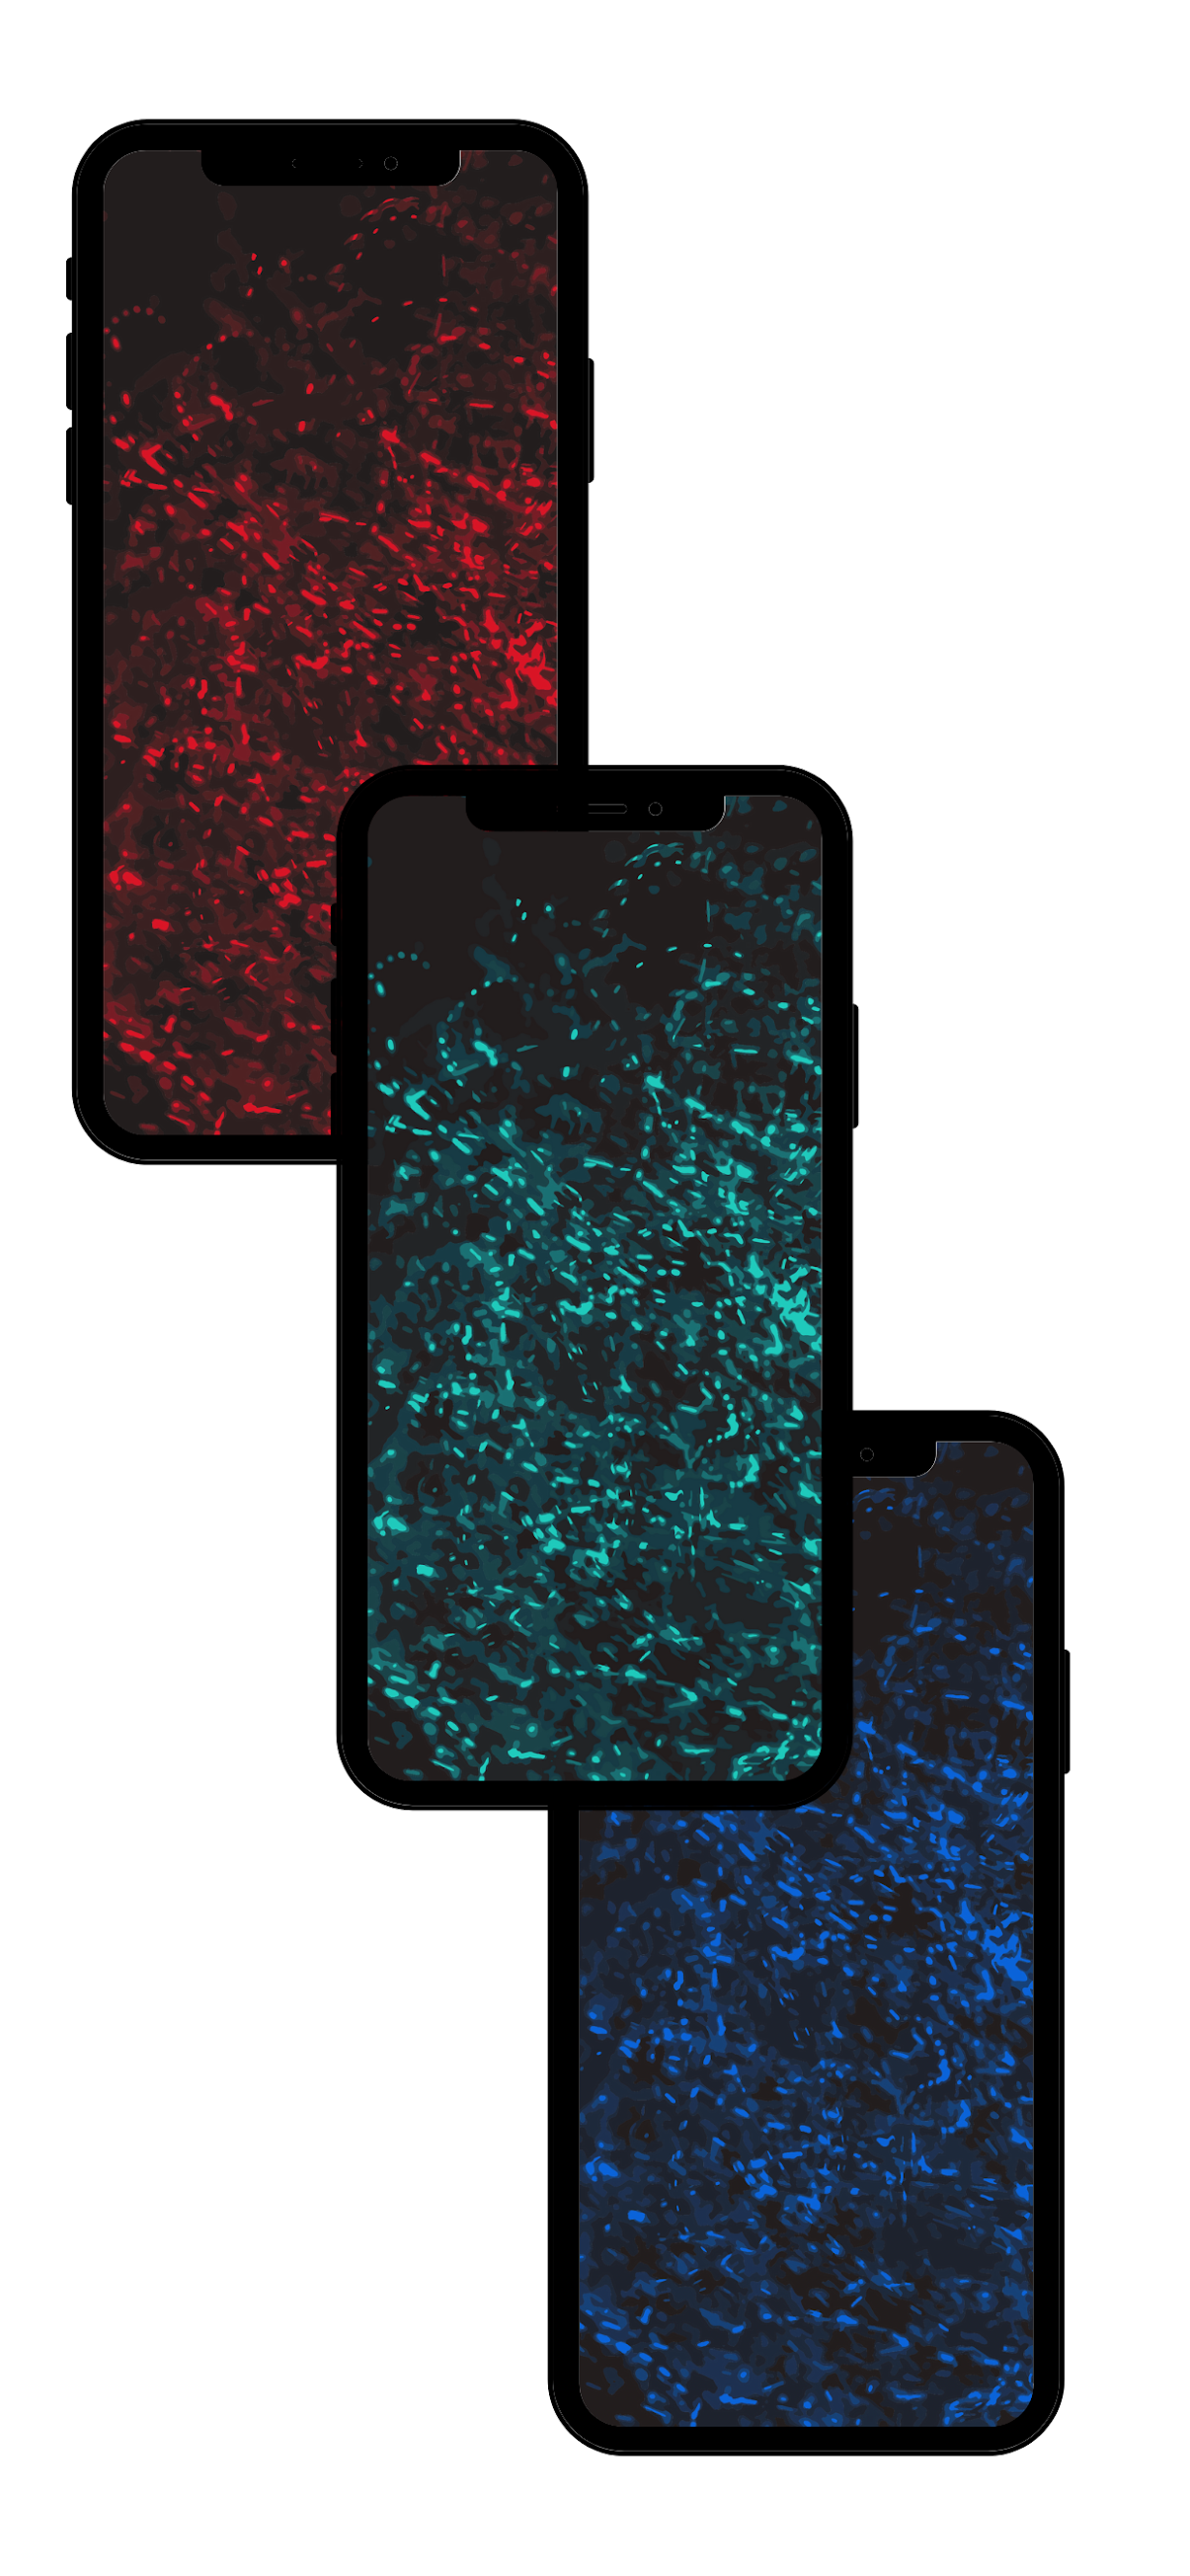 iphone-wallpaper-abstract